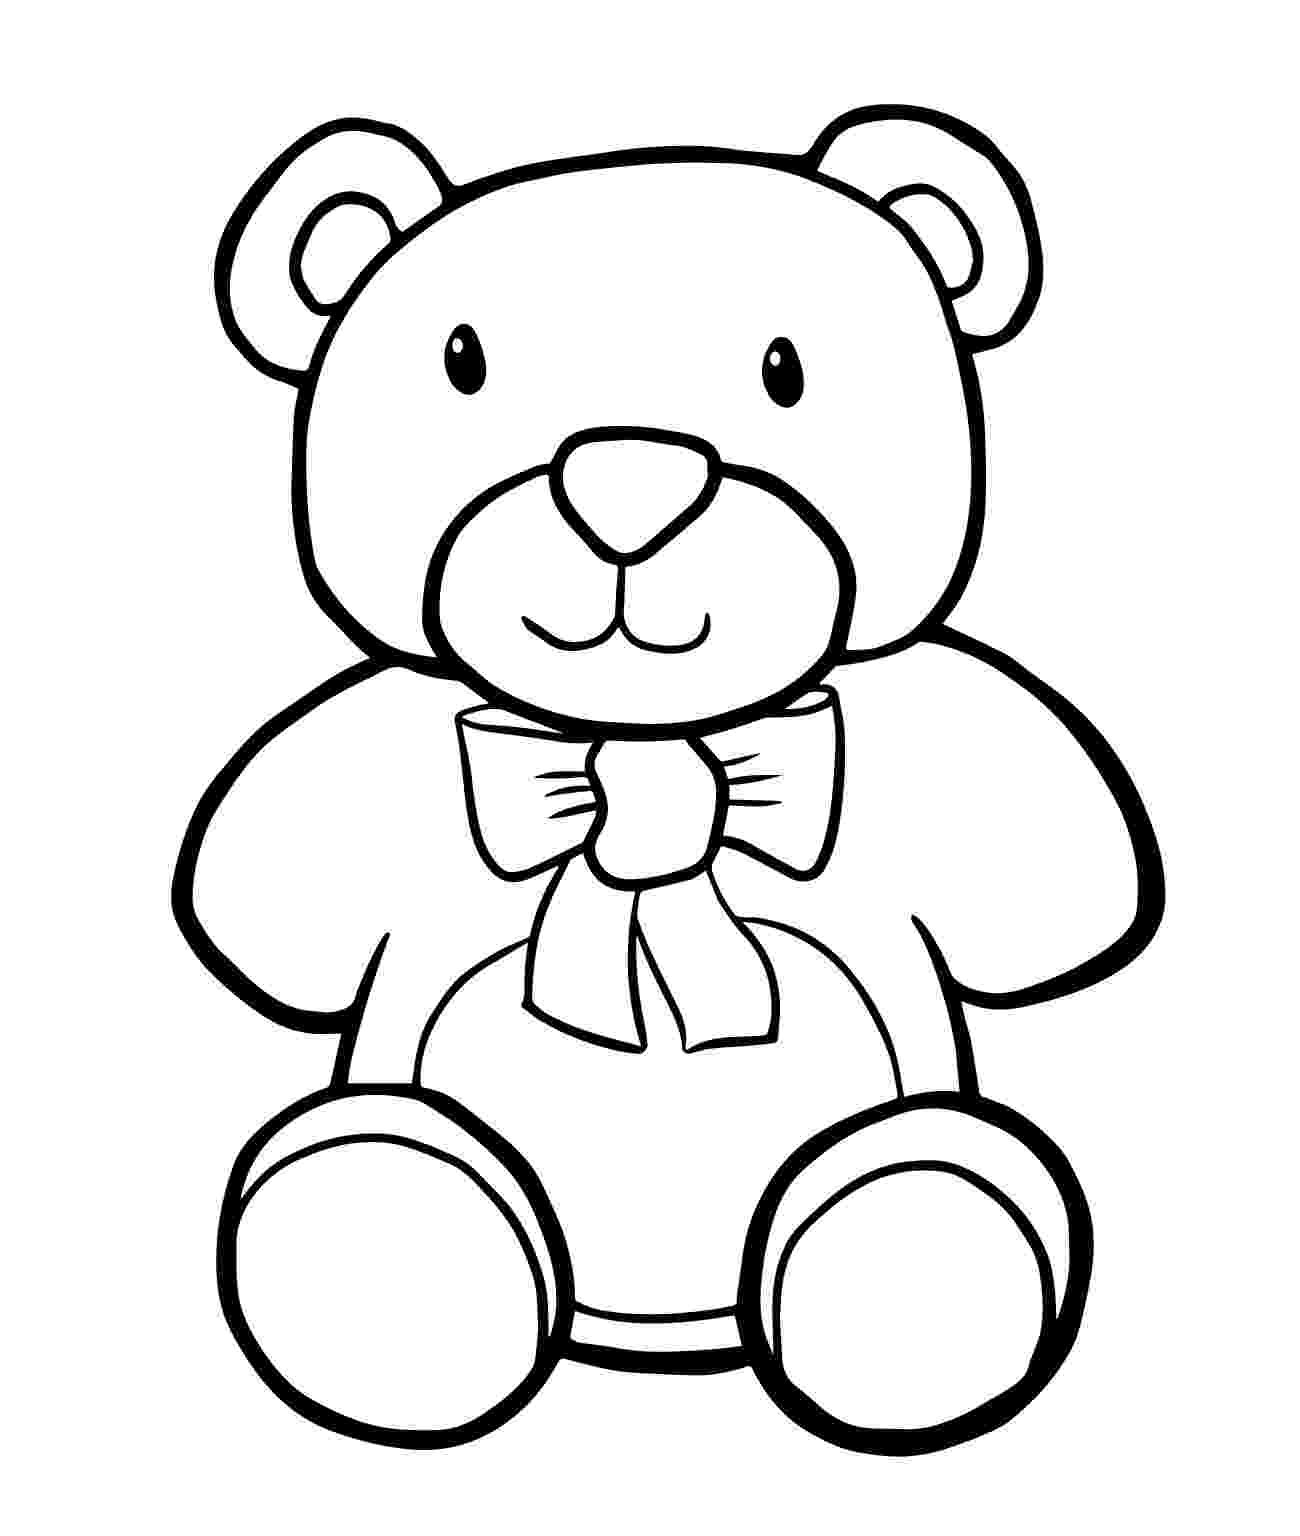 teddy to colour free printable teddy bear coloring pages for kids to teddy colour